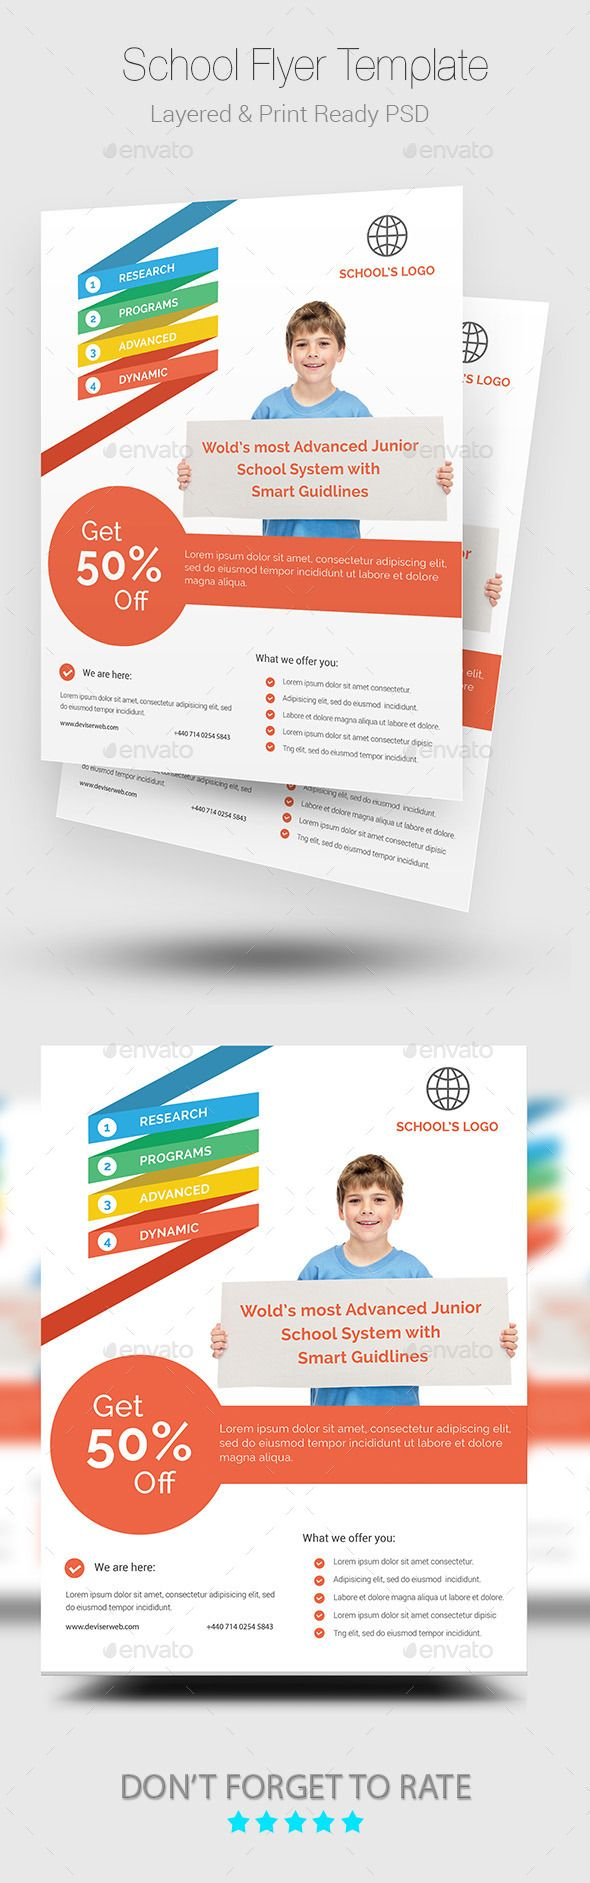 School Flyer — Photoshop PSD #red #school • Available here → https://graphicriver.net/item/school-flyer/10009443?ref=pxcr